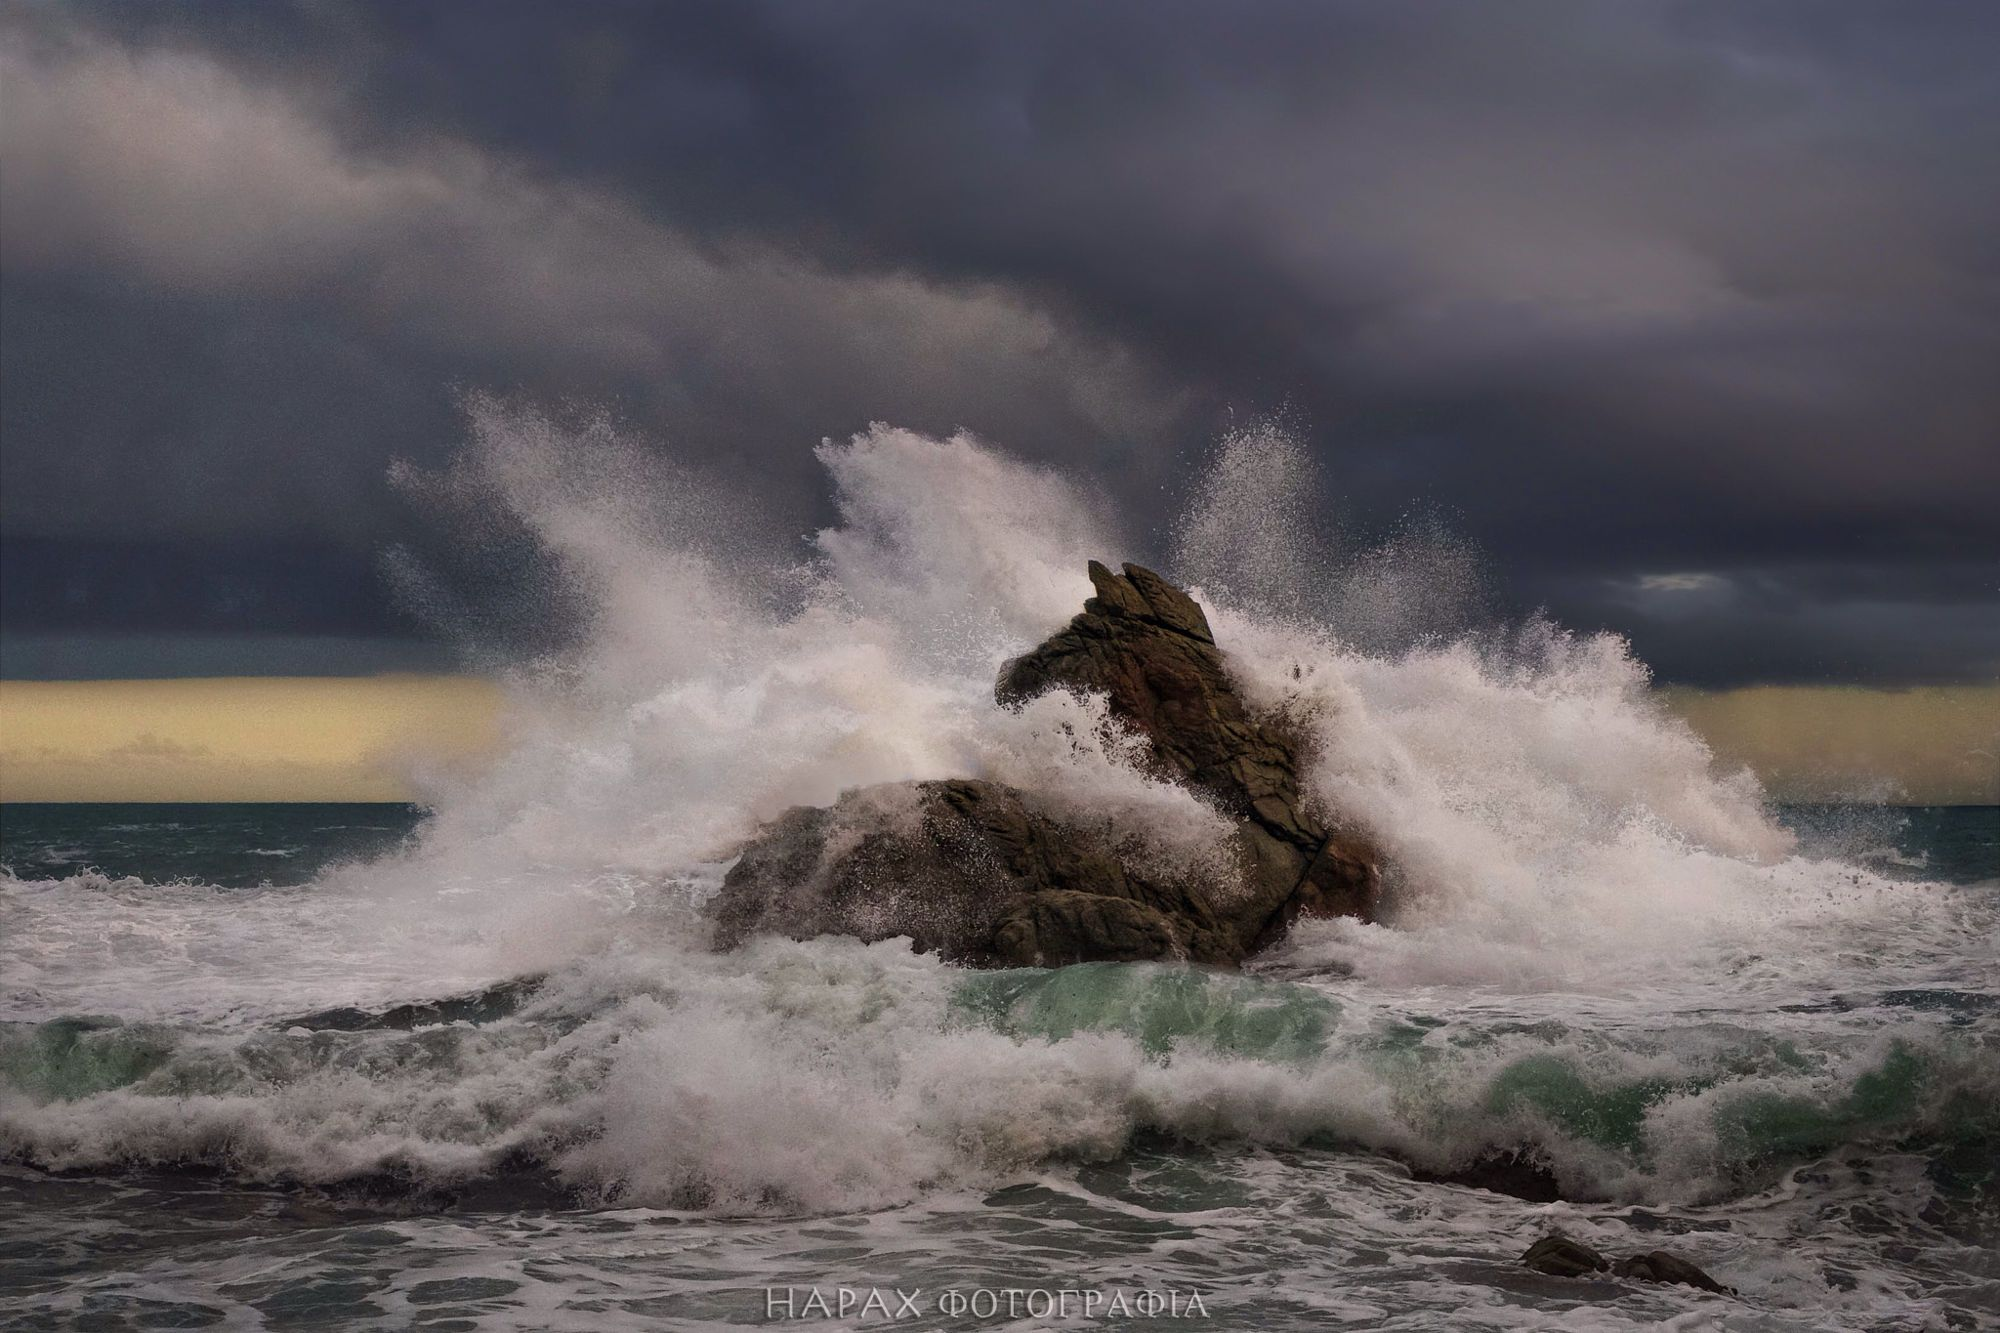 Riding amid the Poseidon's anger! by Blai Figueras on 500px